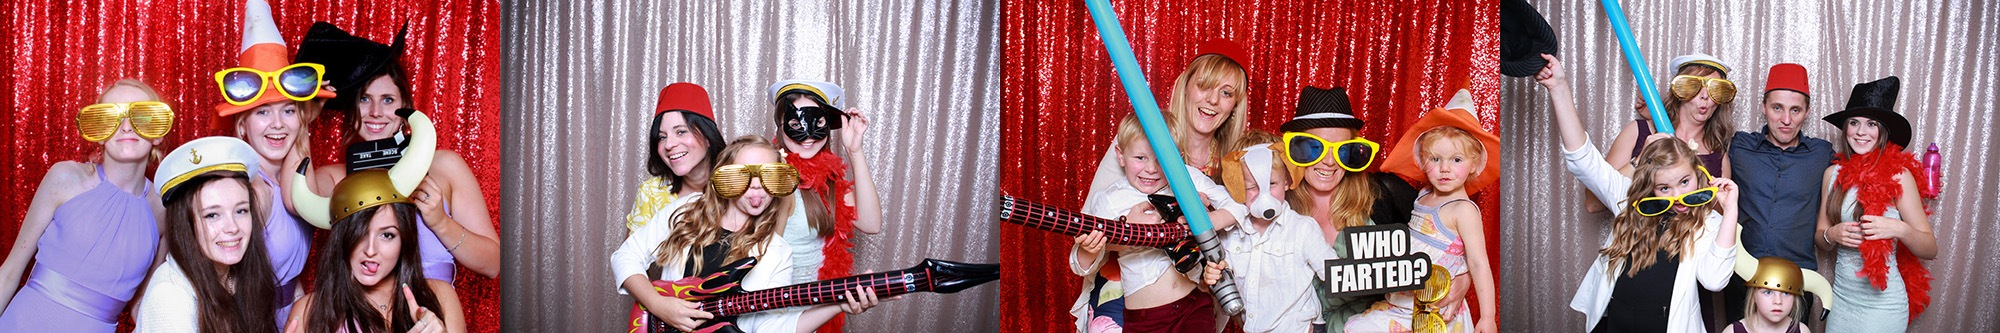 best portable photo booth series of pictures taken by The Photopod